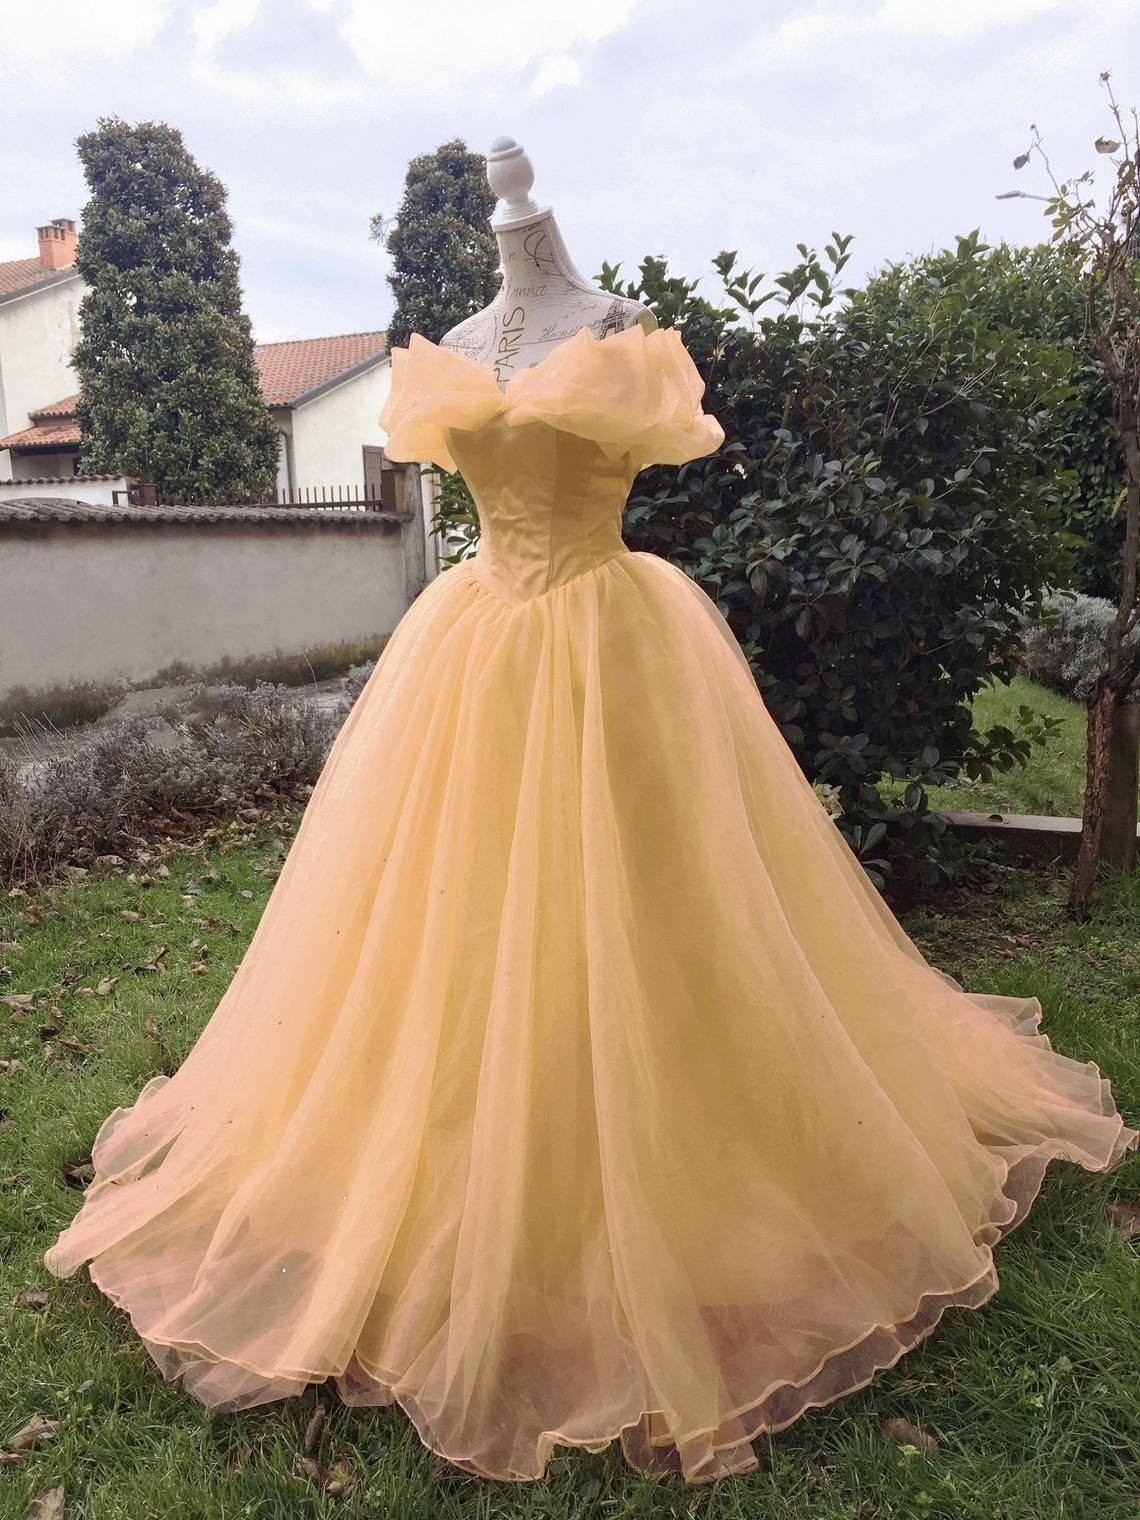 Princess Belle Gown - Beauty and the Beast Costume